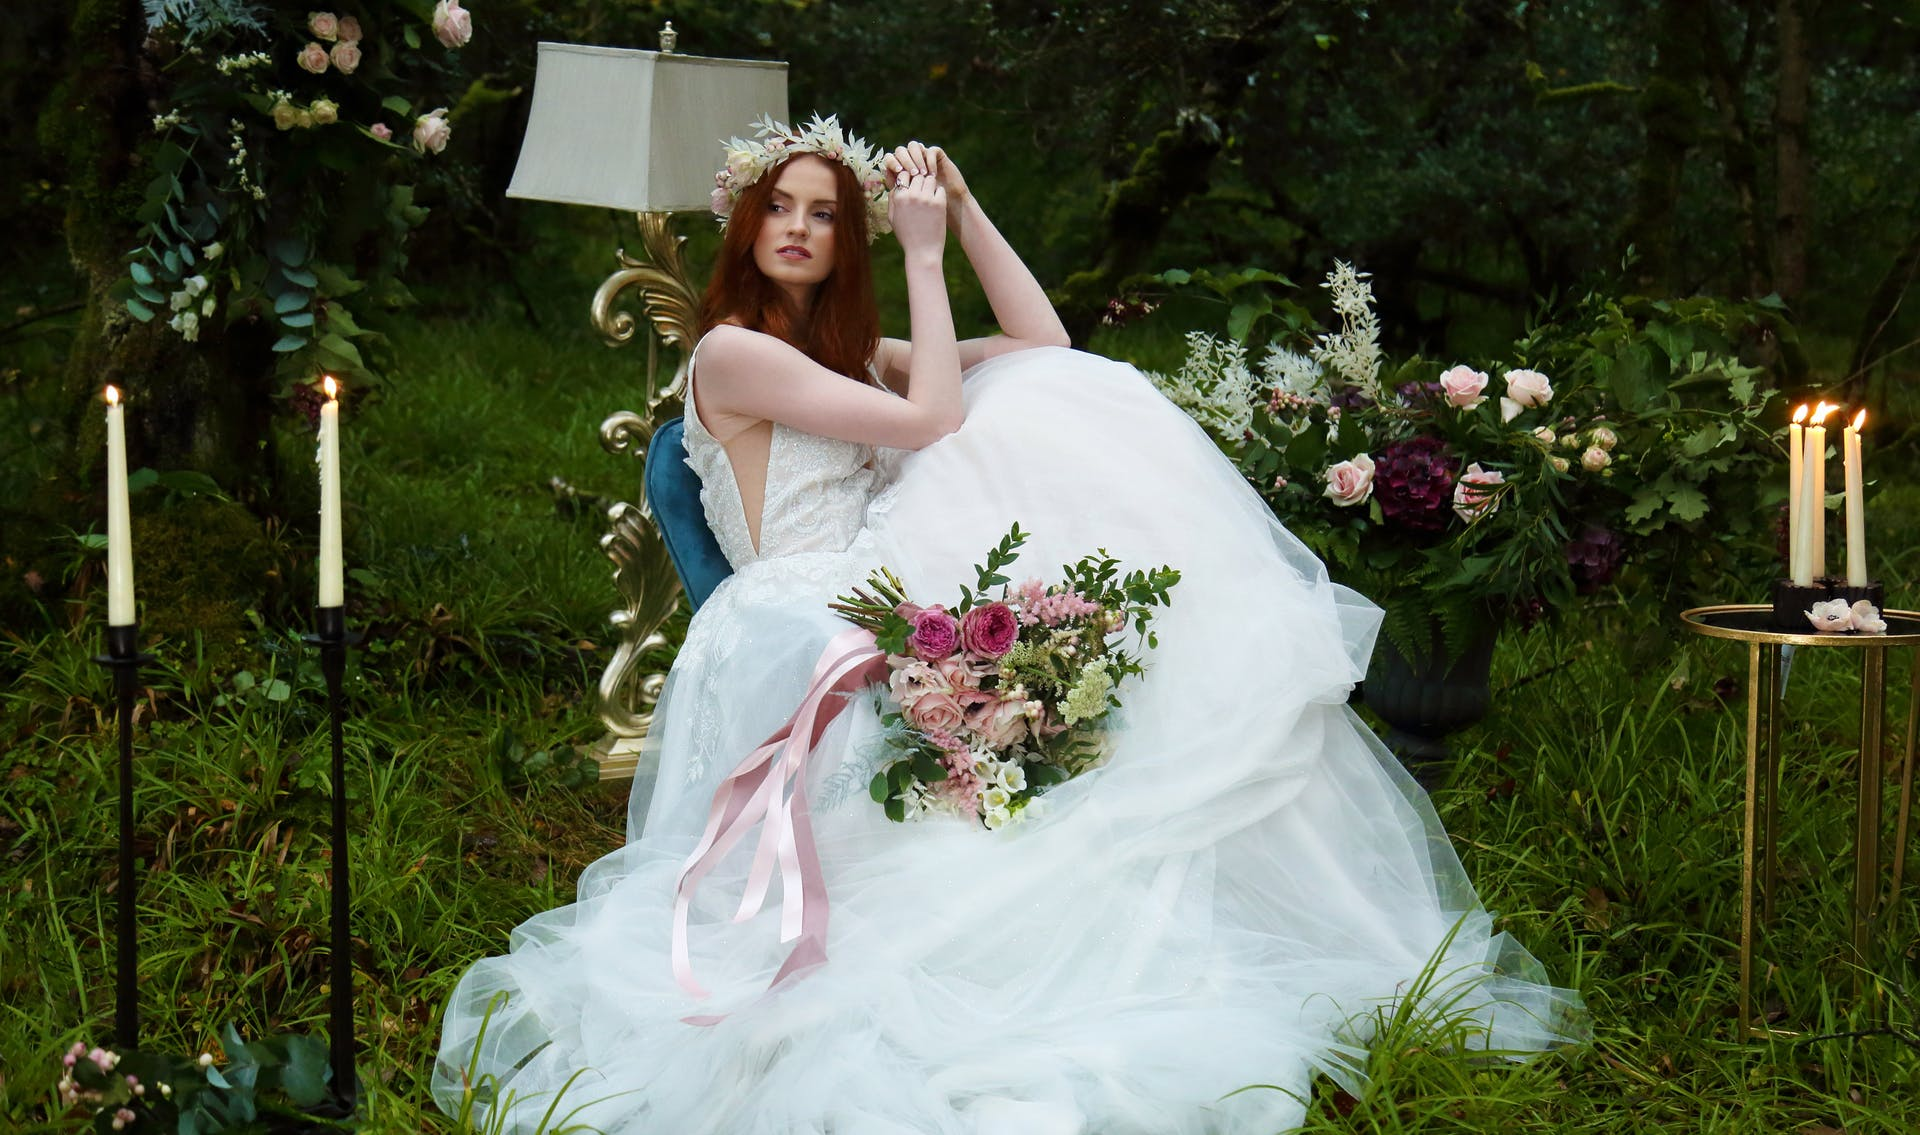 Bride in tulle wedding dress in forest